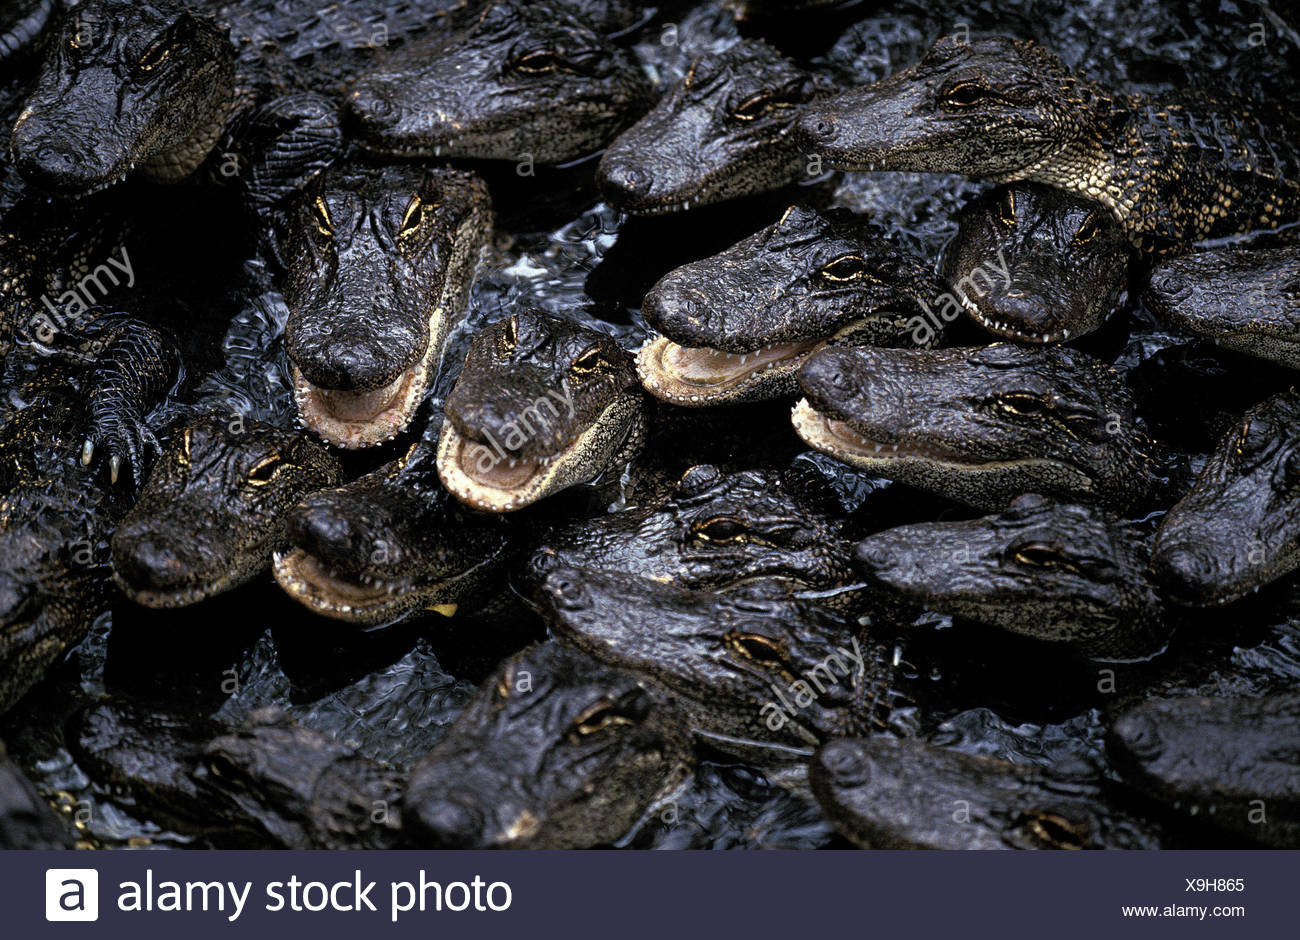 American alligators,alligator mississipiensis,group,young animals,water surface,Florida, Stock Photo